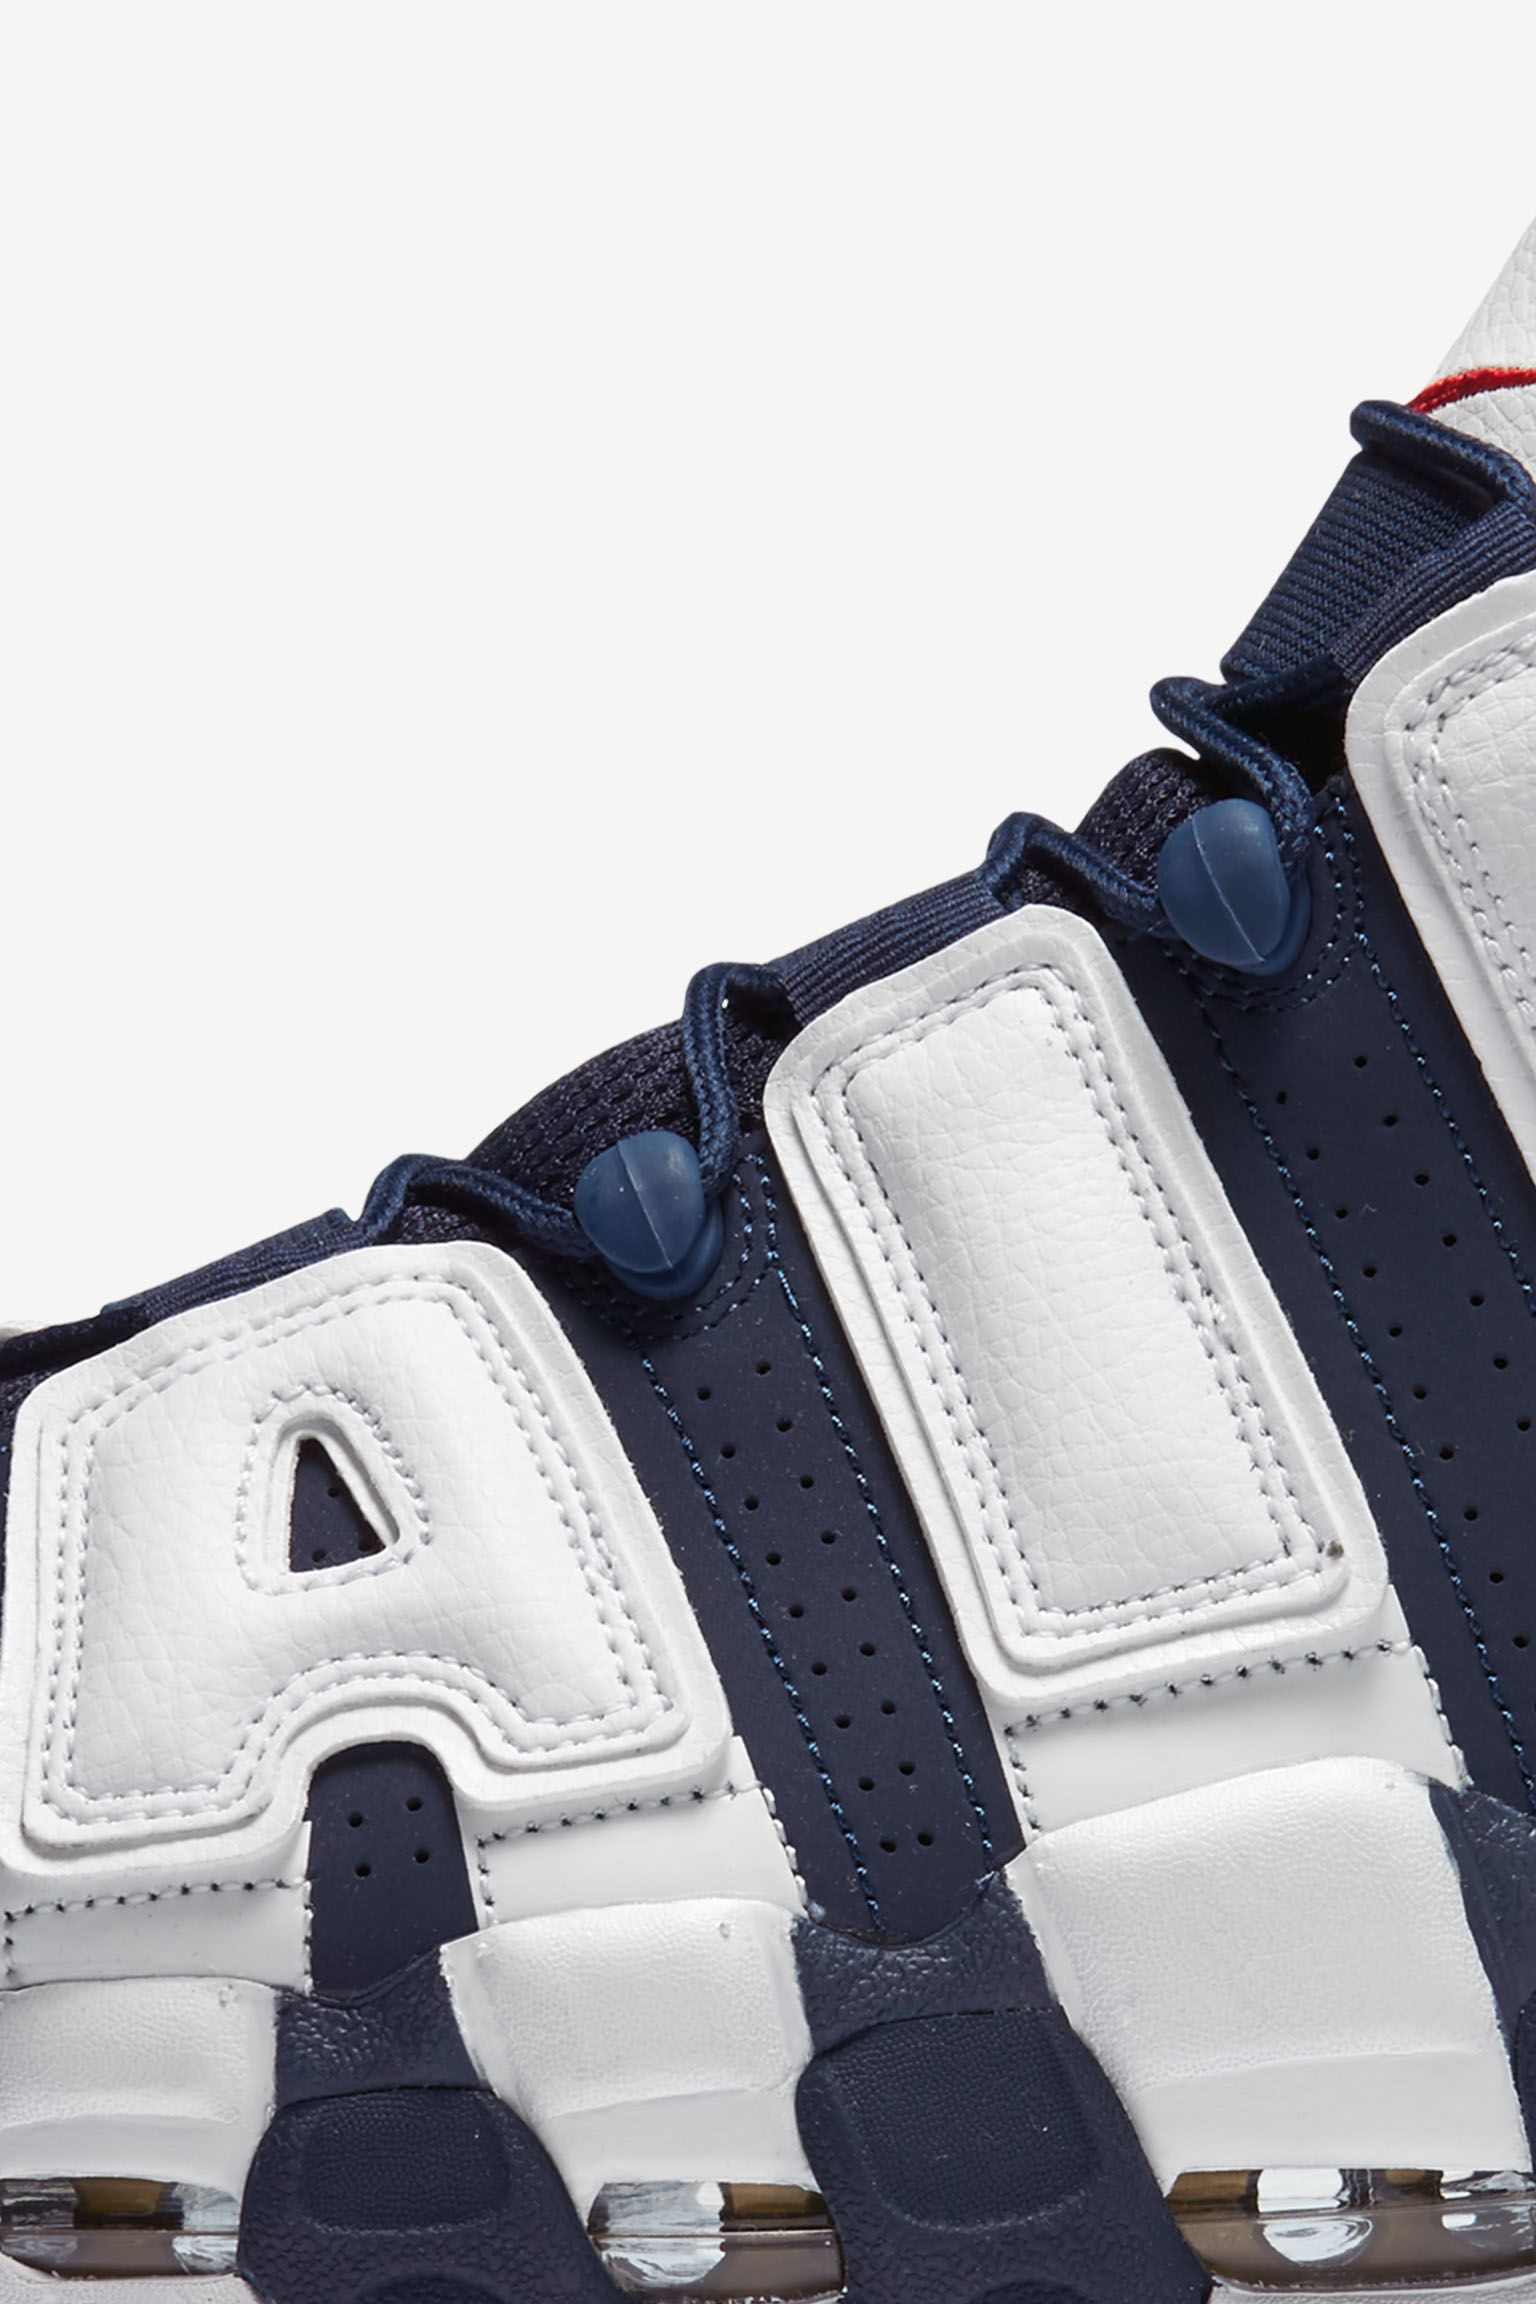 Nike Air More Uptempo 'Summer of '96'